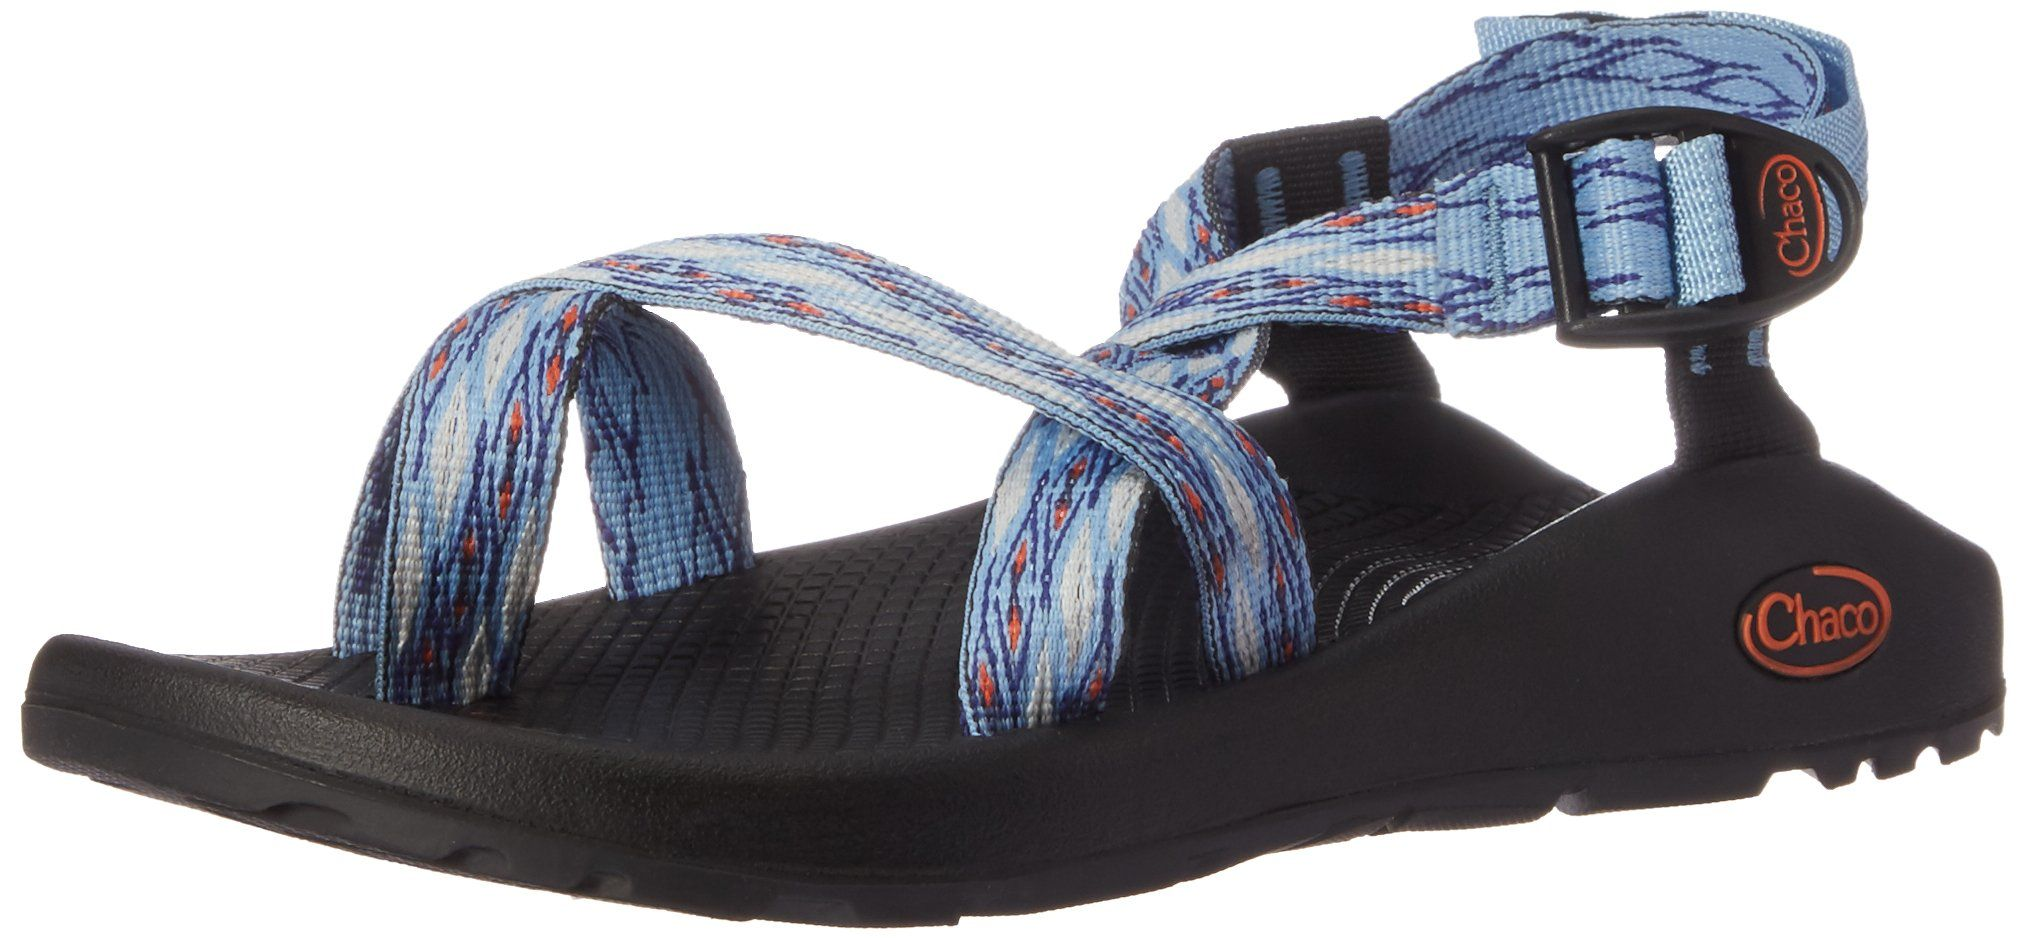 Chaco Women's Z2 Classic Athletic Sandal, Bluebell, 10 M